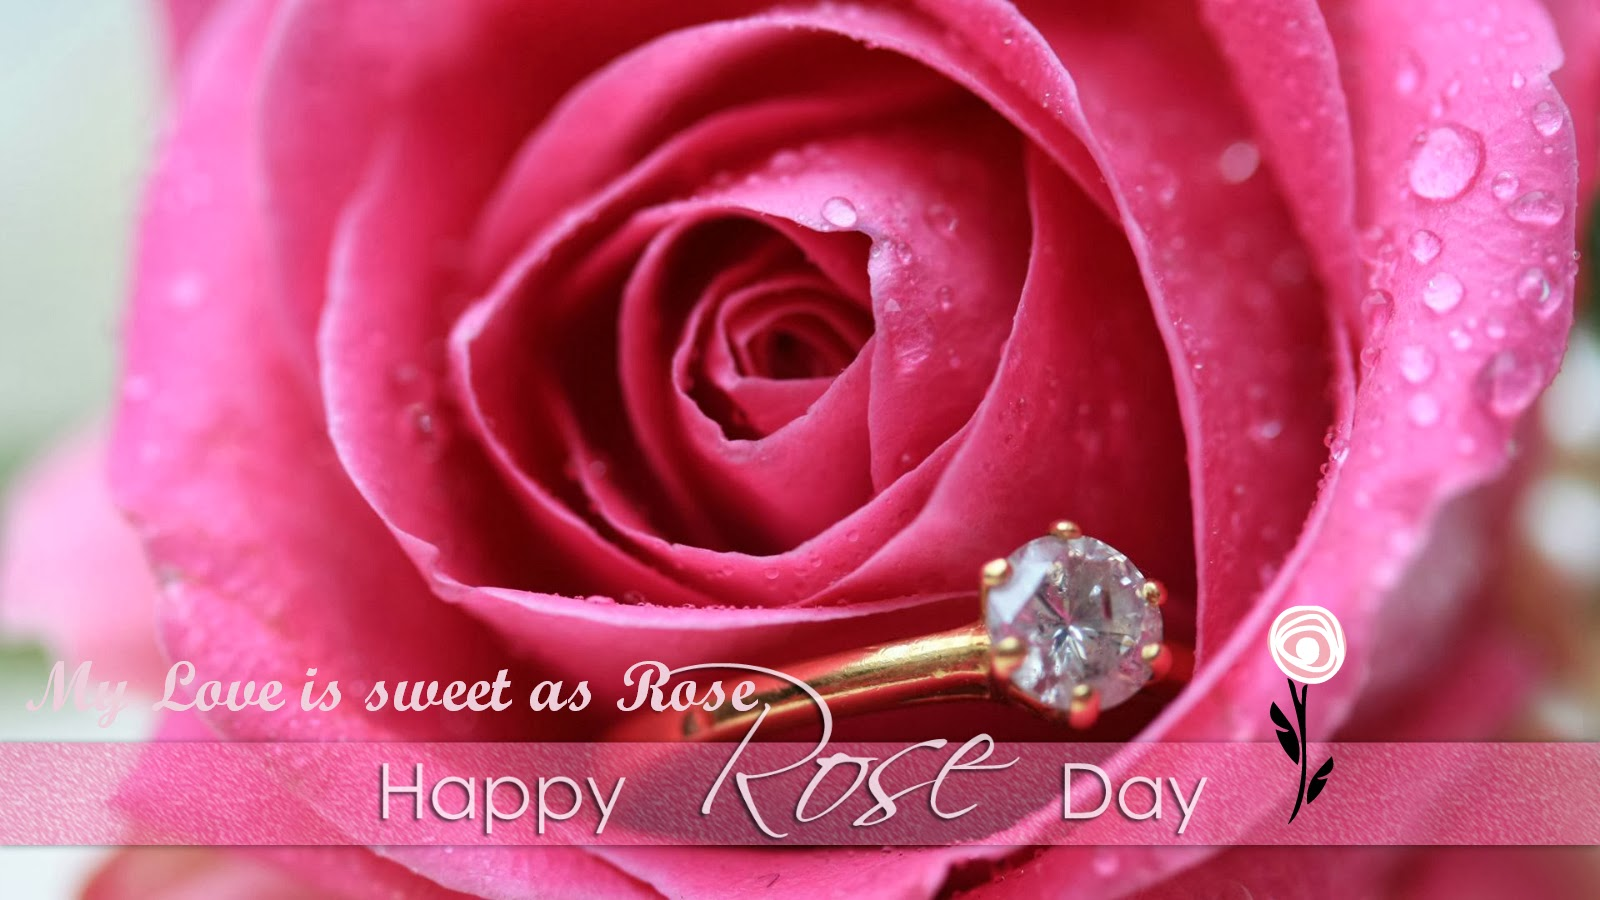 My Valentine 2014 Valentines Day Live Wallpapers Rose Day 2014